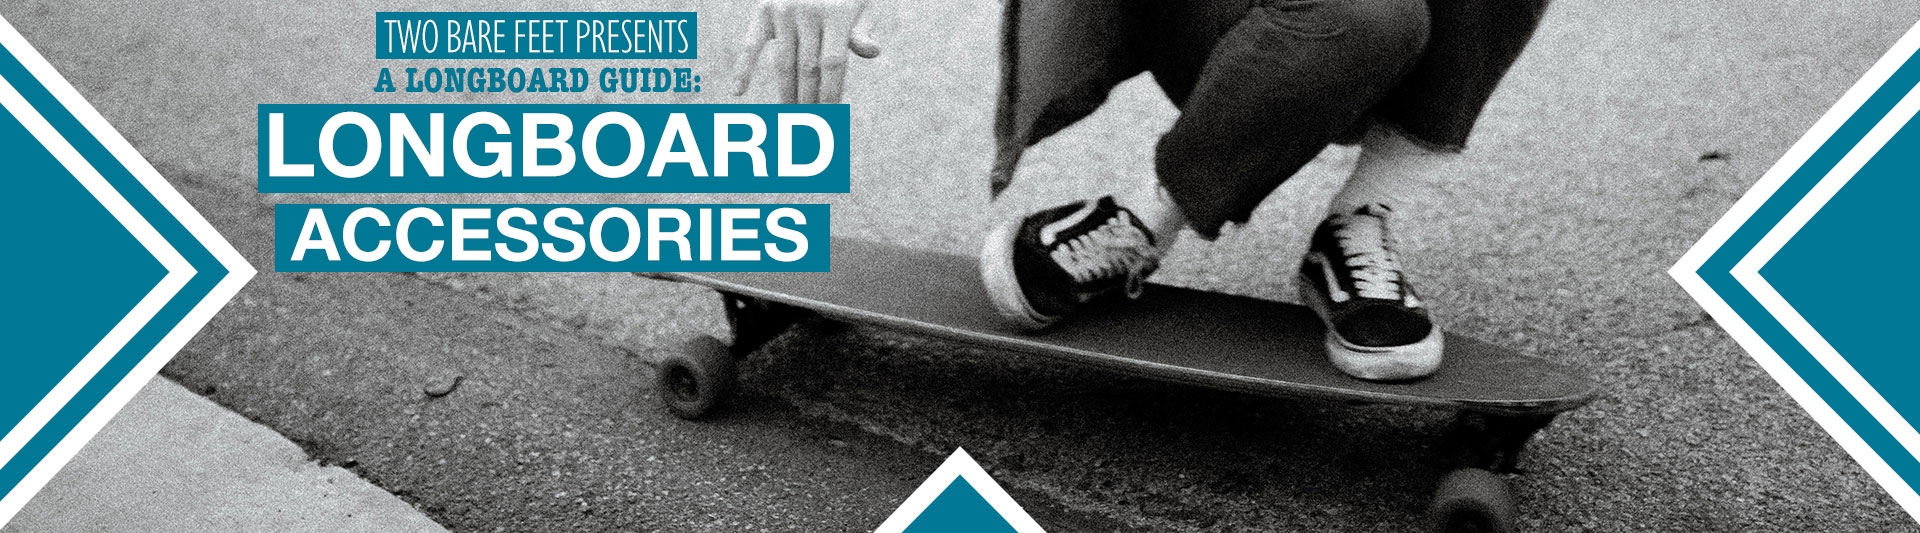 Longboard accessories banner